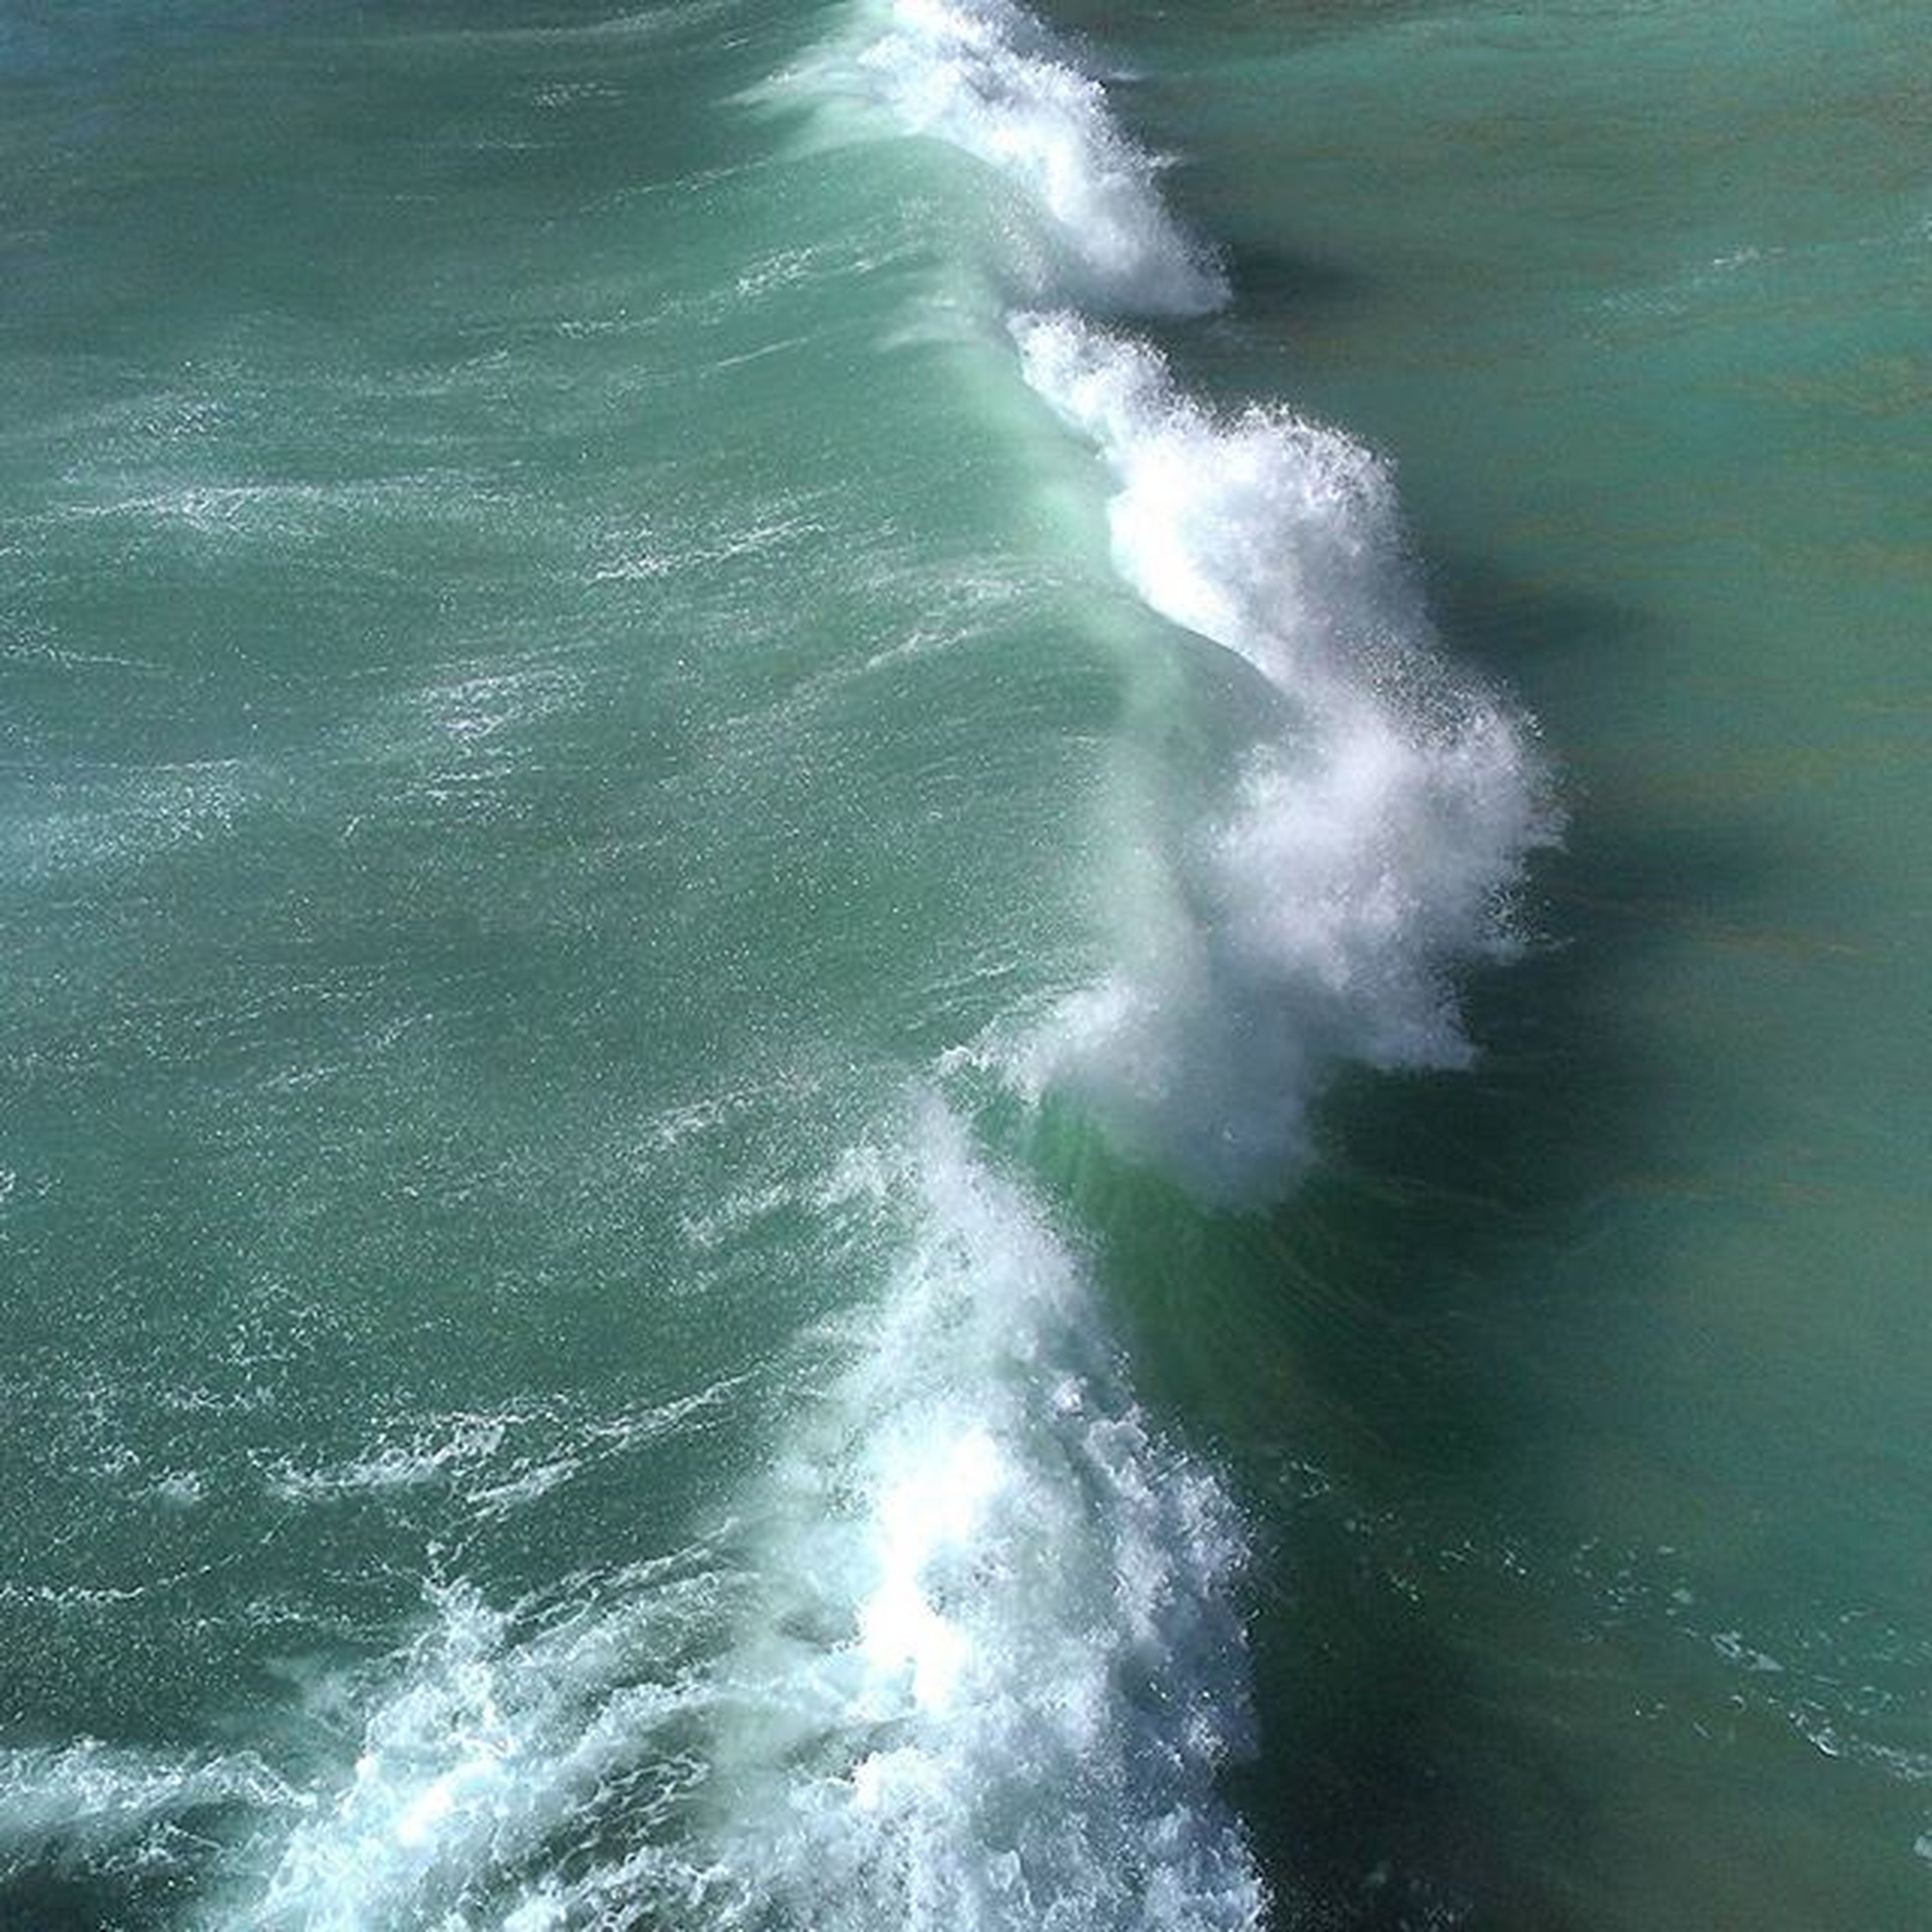 water, sea, waterfront, wave, motion, rippled, surf, splashing, high angle view, nature, beauty in nature, power in nature, day, outdoors, no people, sunlight, scenics, tranquility, rock - object, idyllic